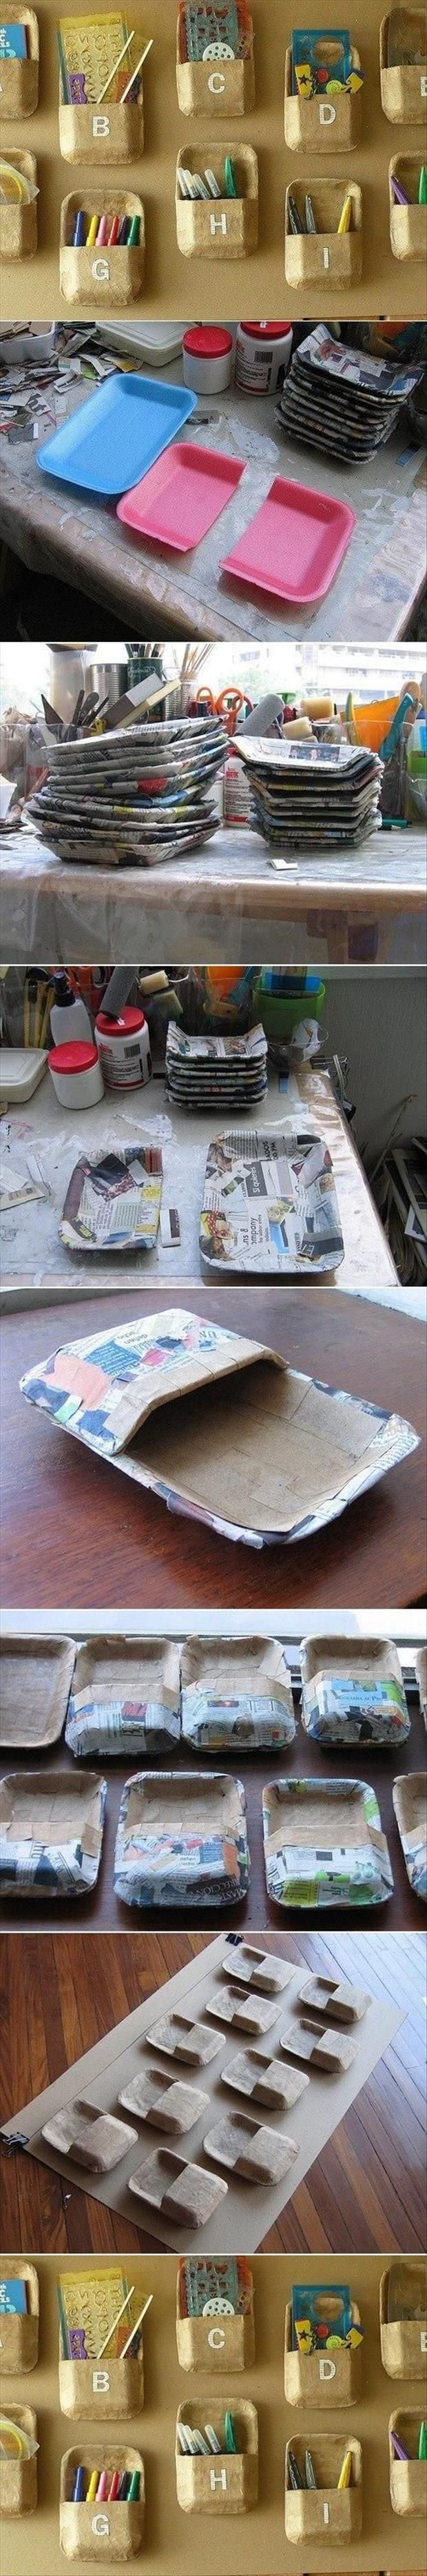 Fun Do It Yourself Craft Ideas - 45 Pics & IDEAS